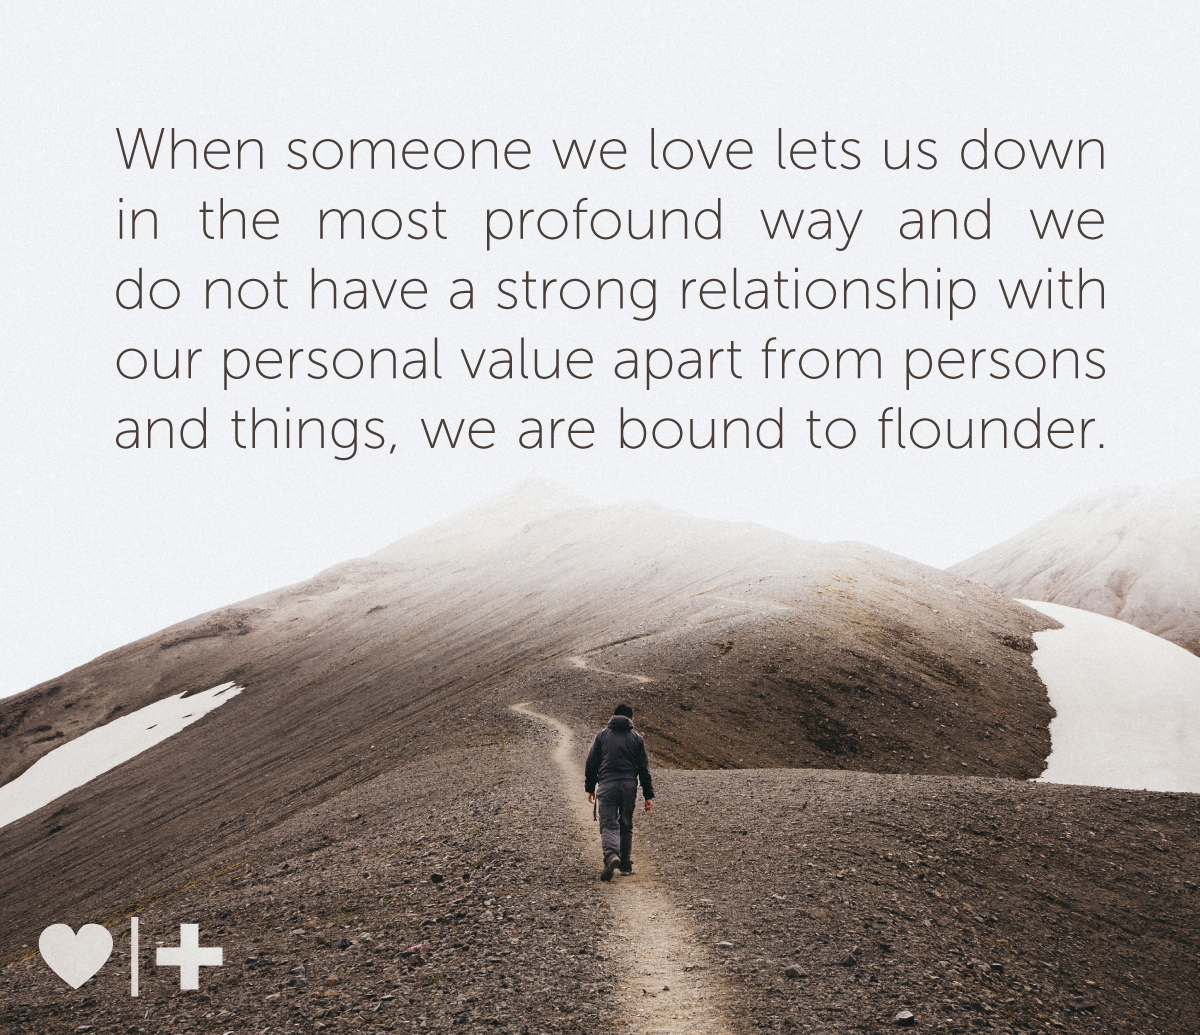 when someone we love lets us down in the most profound way and we do not have a strong relationship with our personal value apart from persons and things, we are bound to flounder